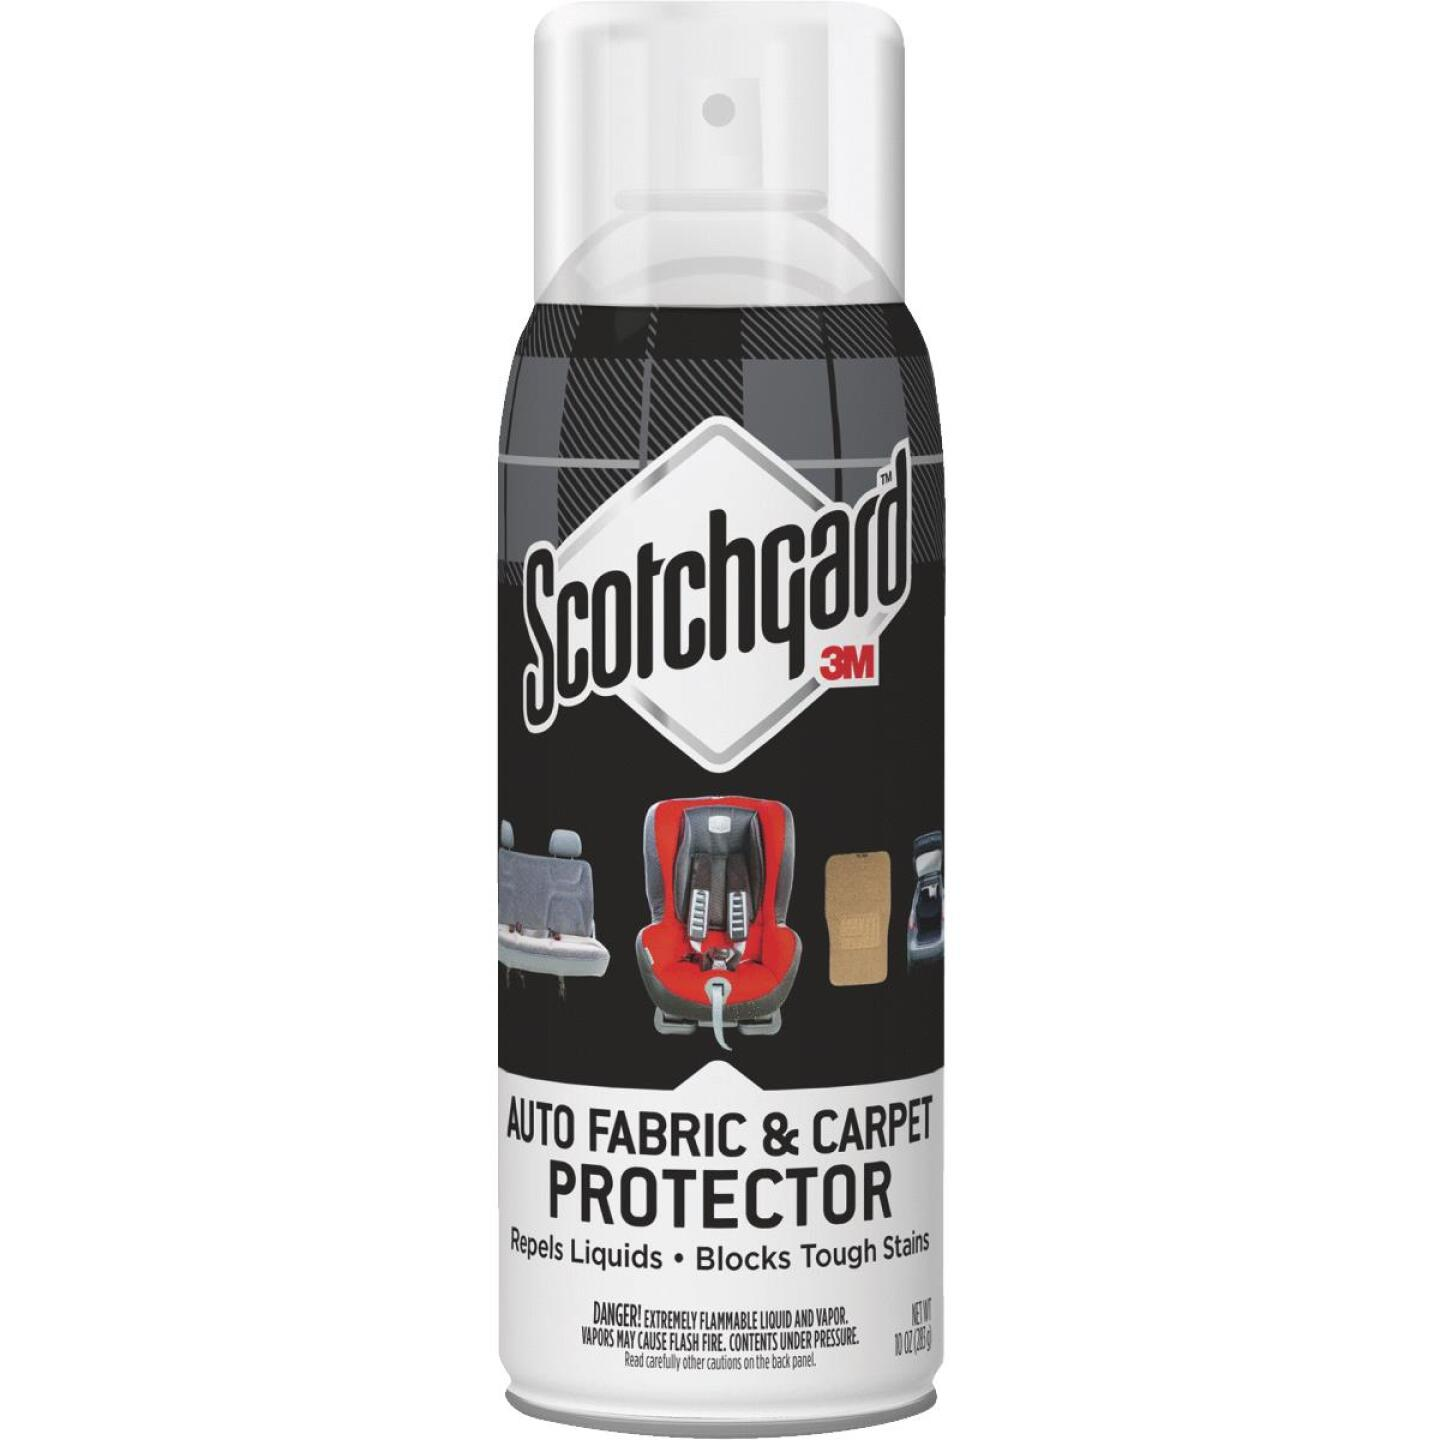 Scotchgard by 3M 10 Oz. Aerosol Auto Fabric and Carpet Protectant Image 1